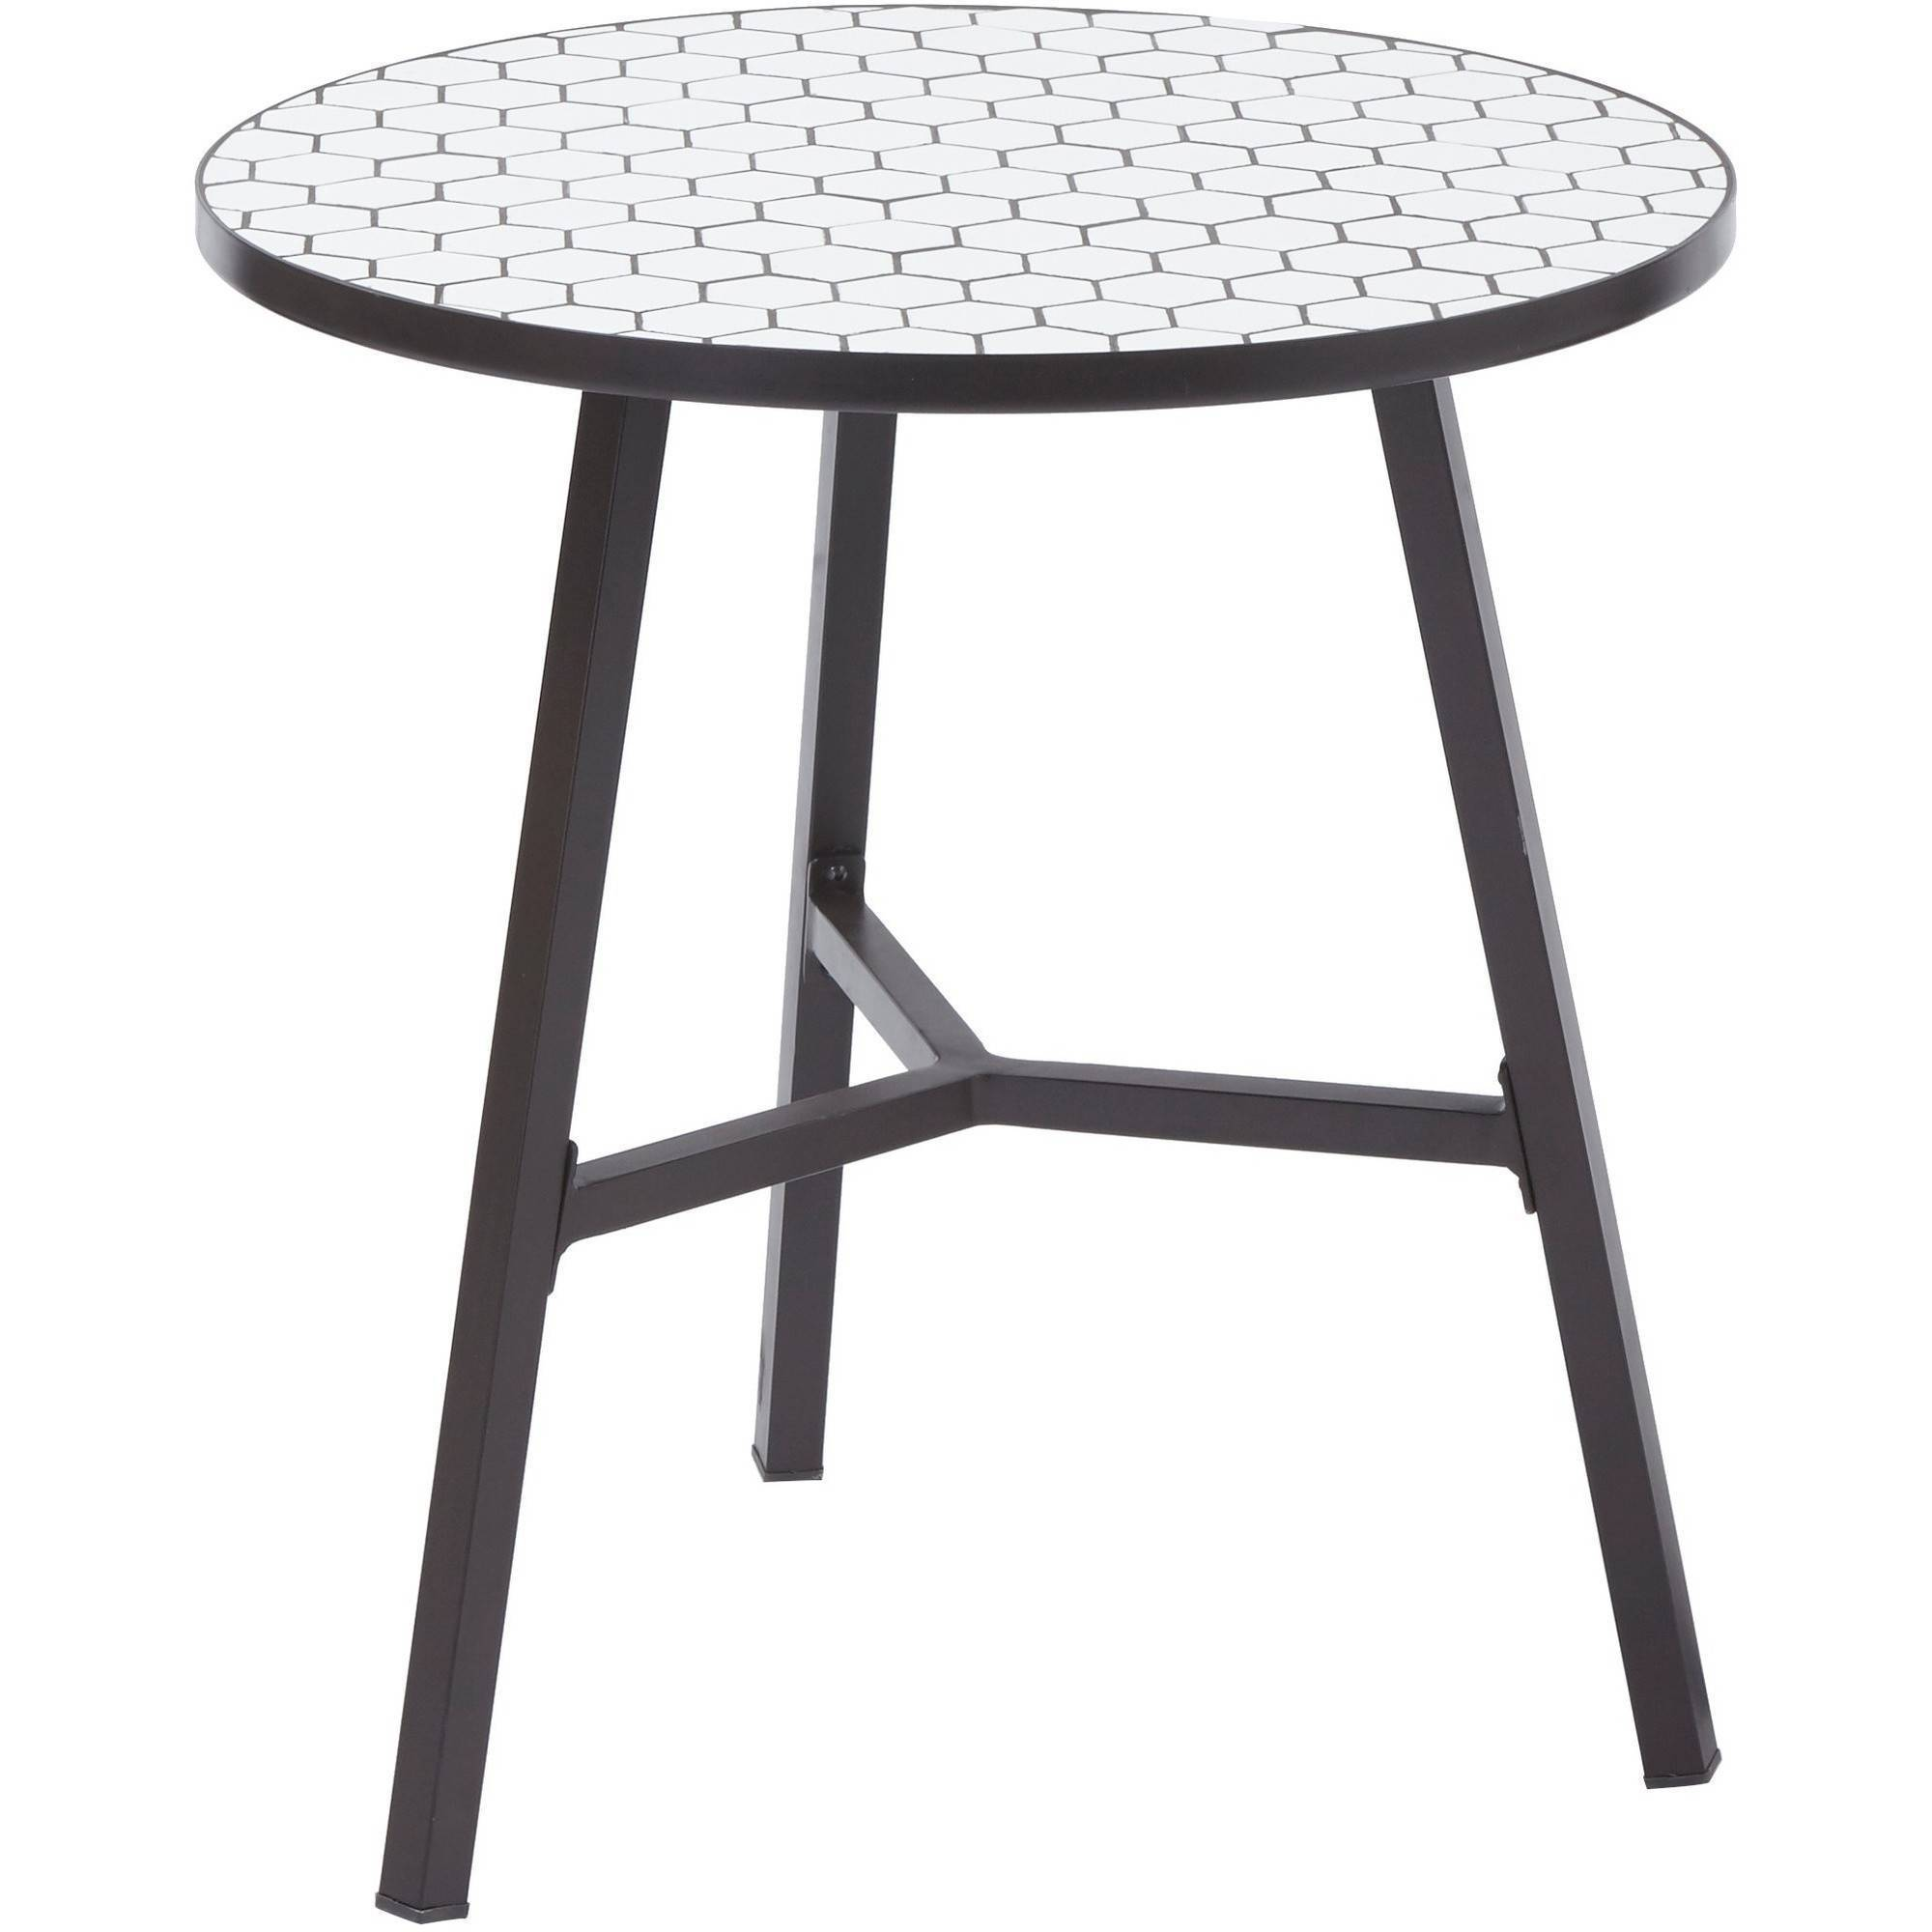 outdoor table and chairs patio furniture - walmart.com RPMGVMJ